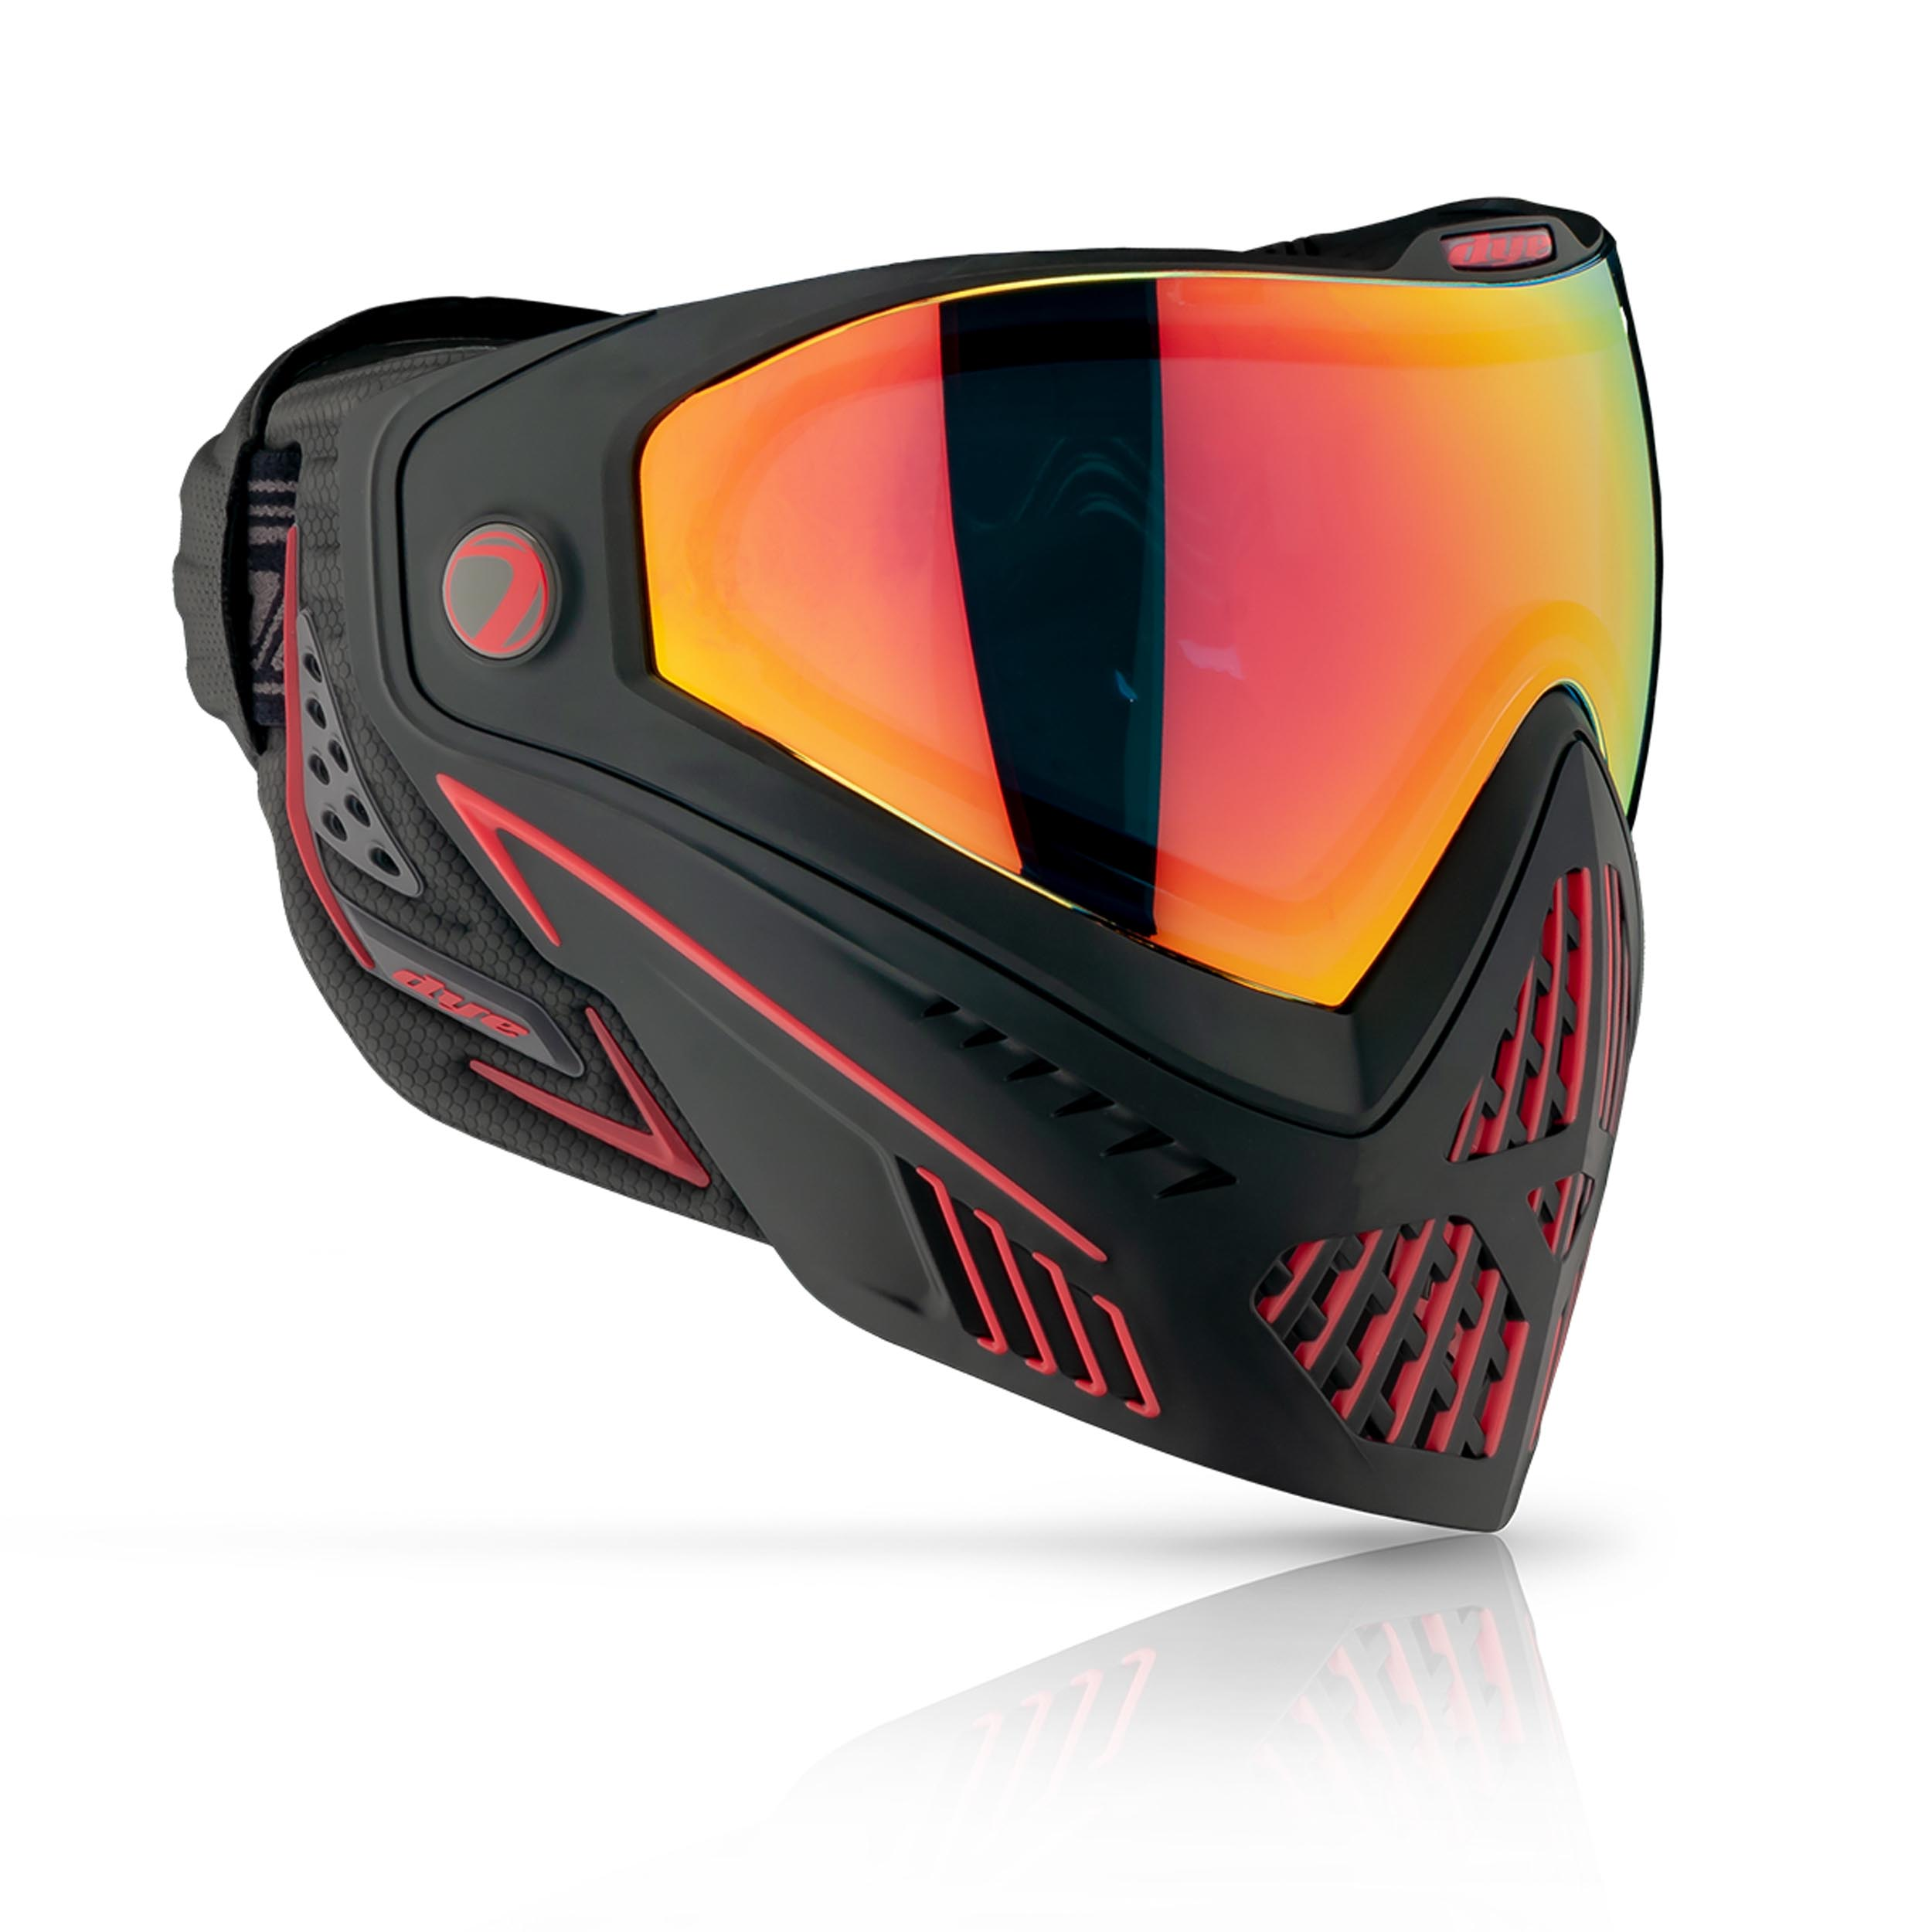 MAS471-1 Dye I5 thermal goggle Onyx Black Gold 2.0 - MAS473